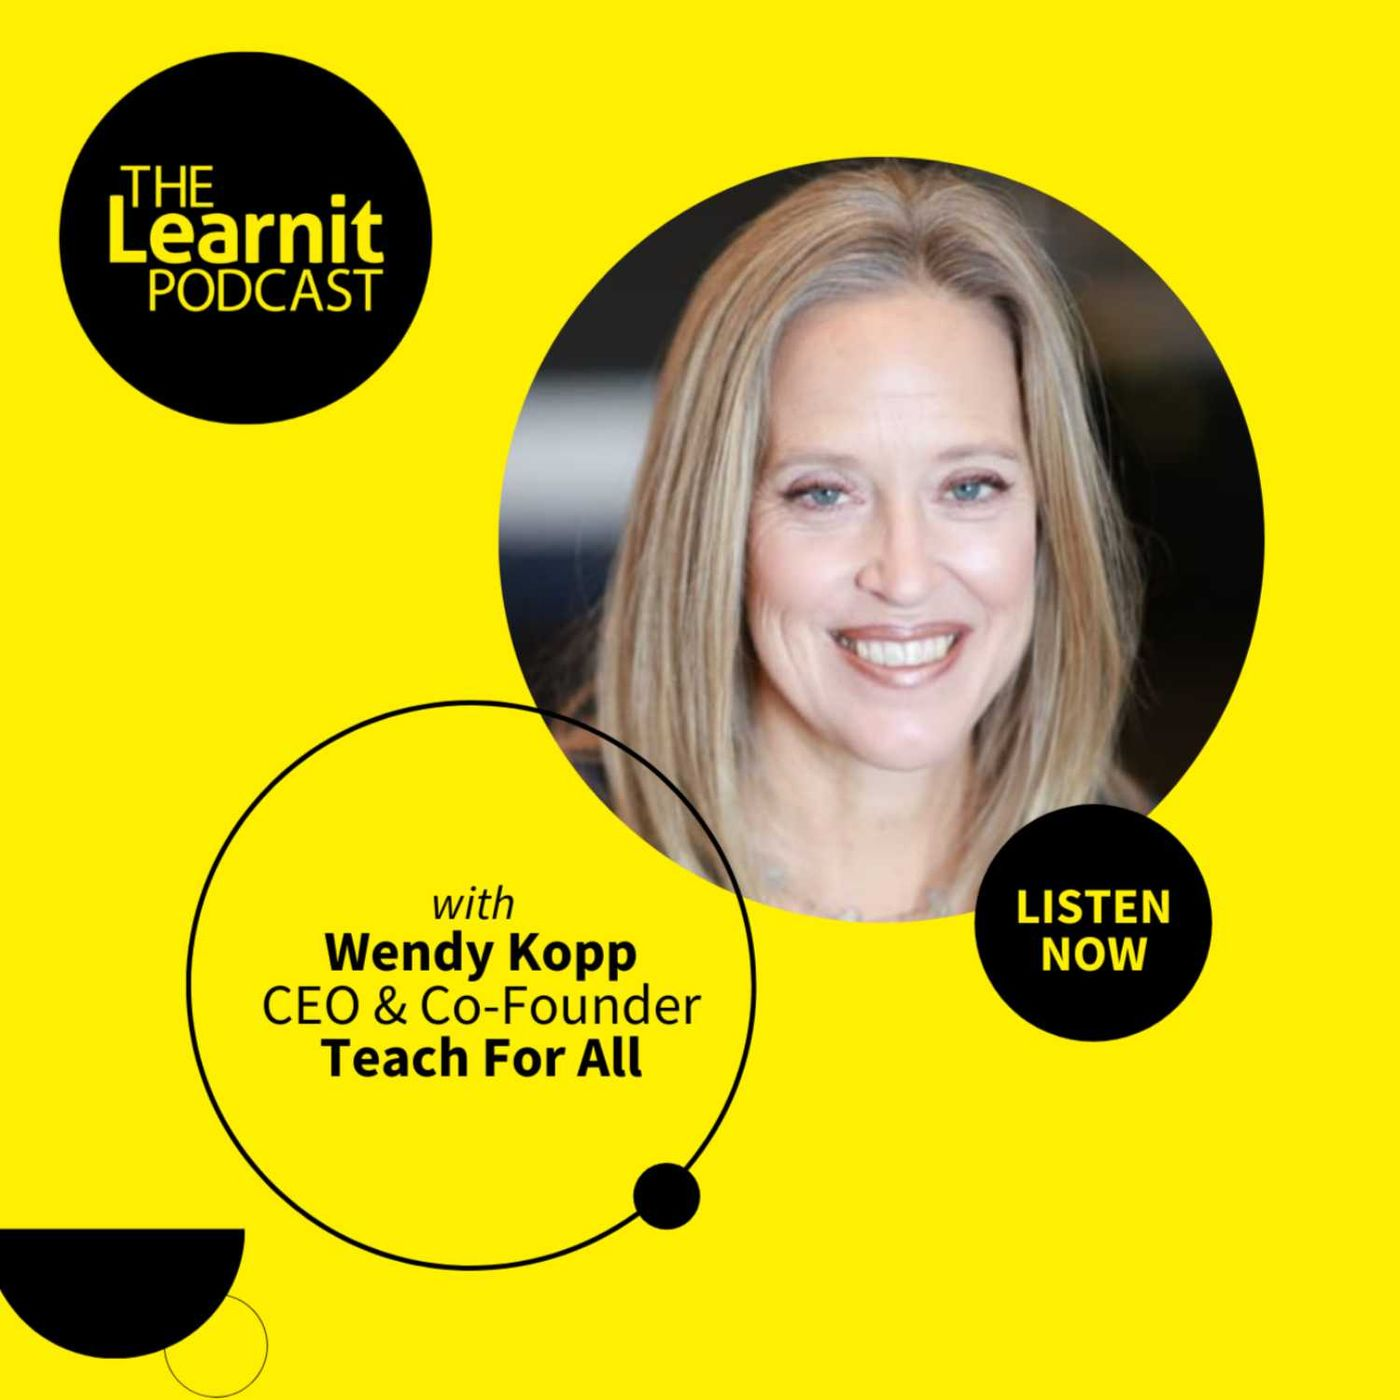 #23, Wendy Kopp, CEO & Co-Founder, Teach For All: How Do We Unleash the Leadership of Our Existing Educators & Students?